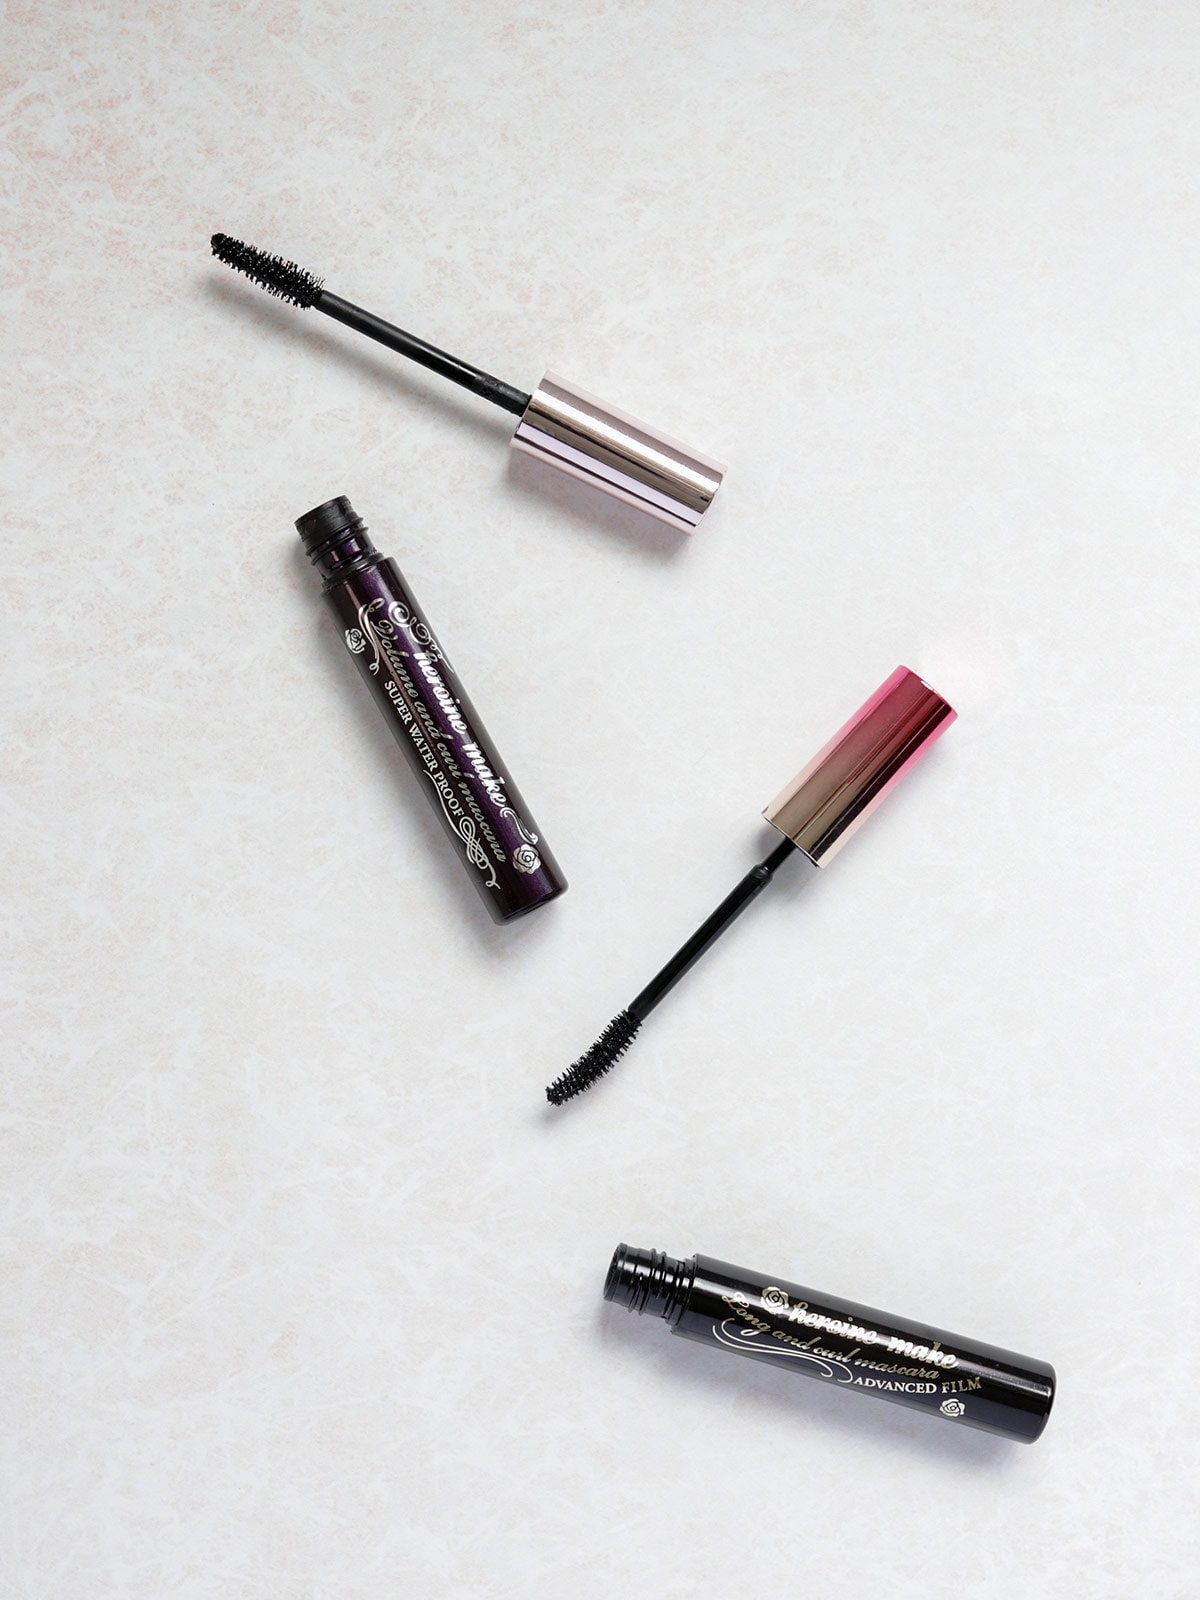 two mascara tubes from heroine makeup brand